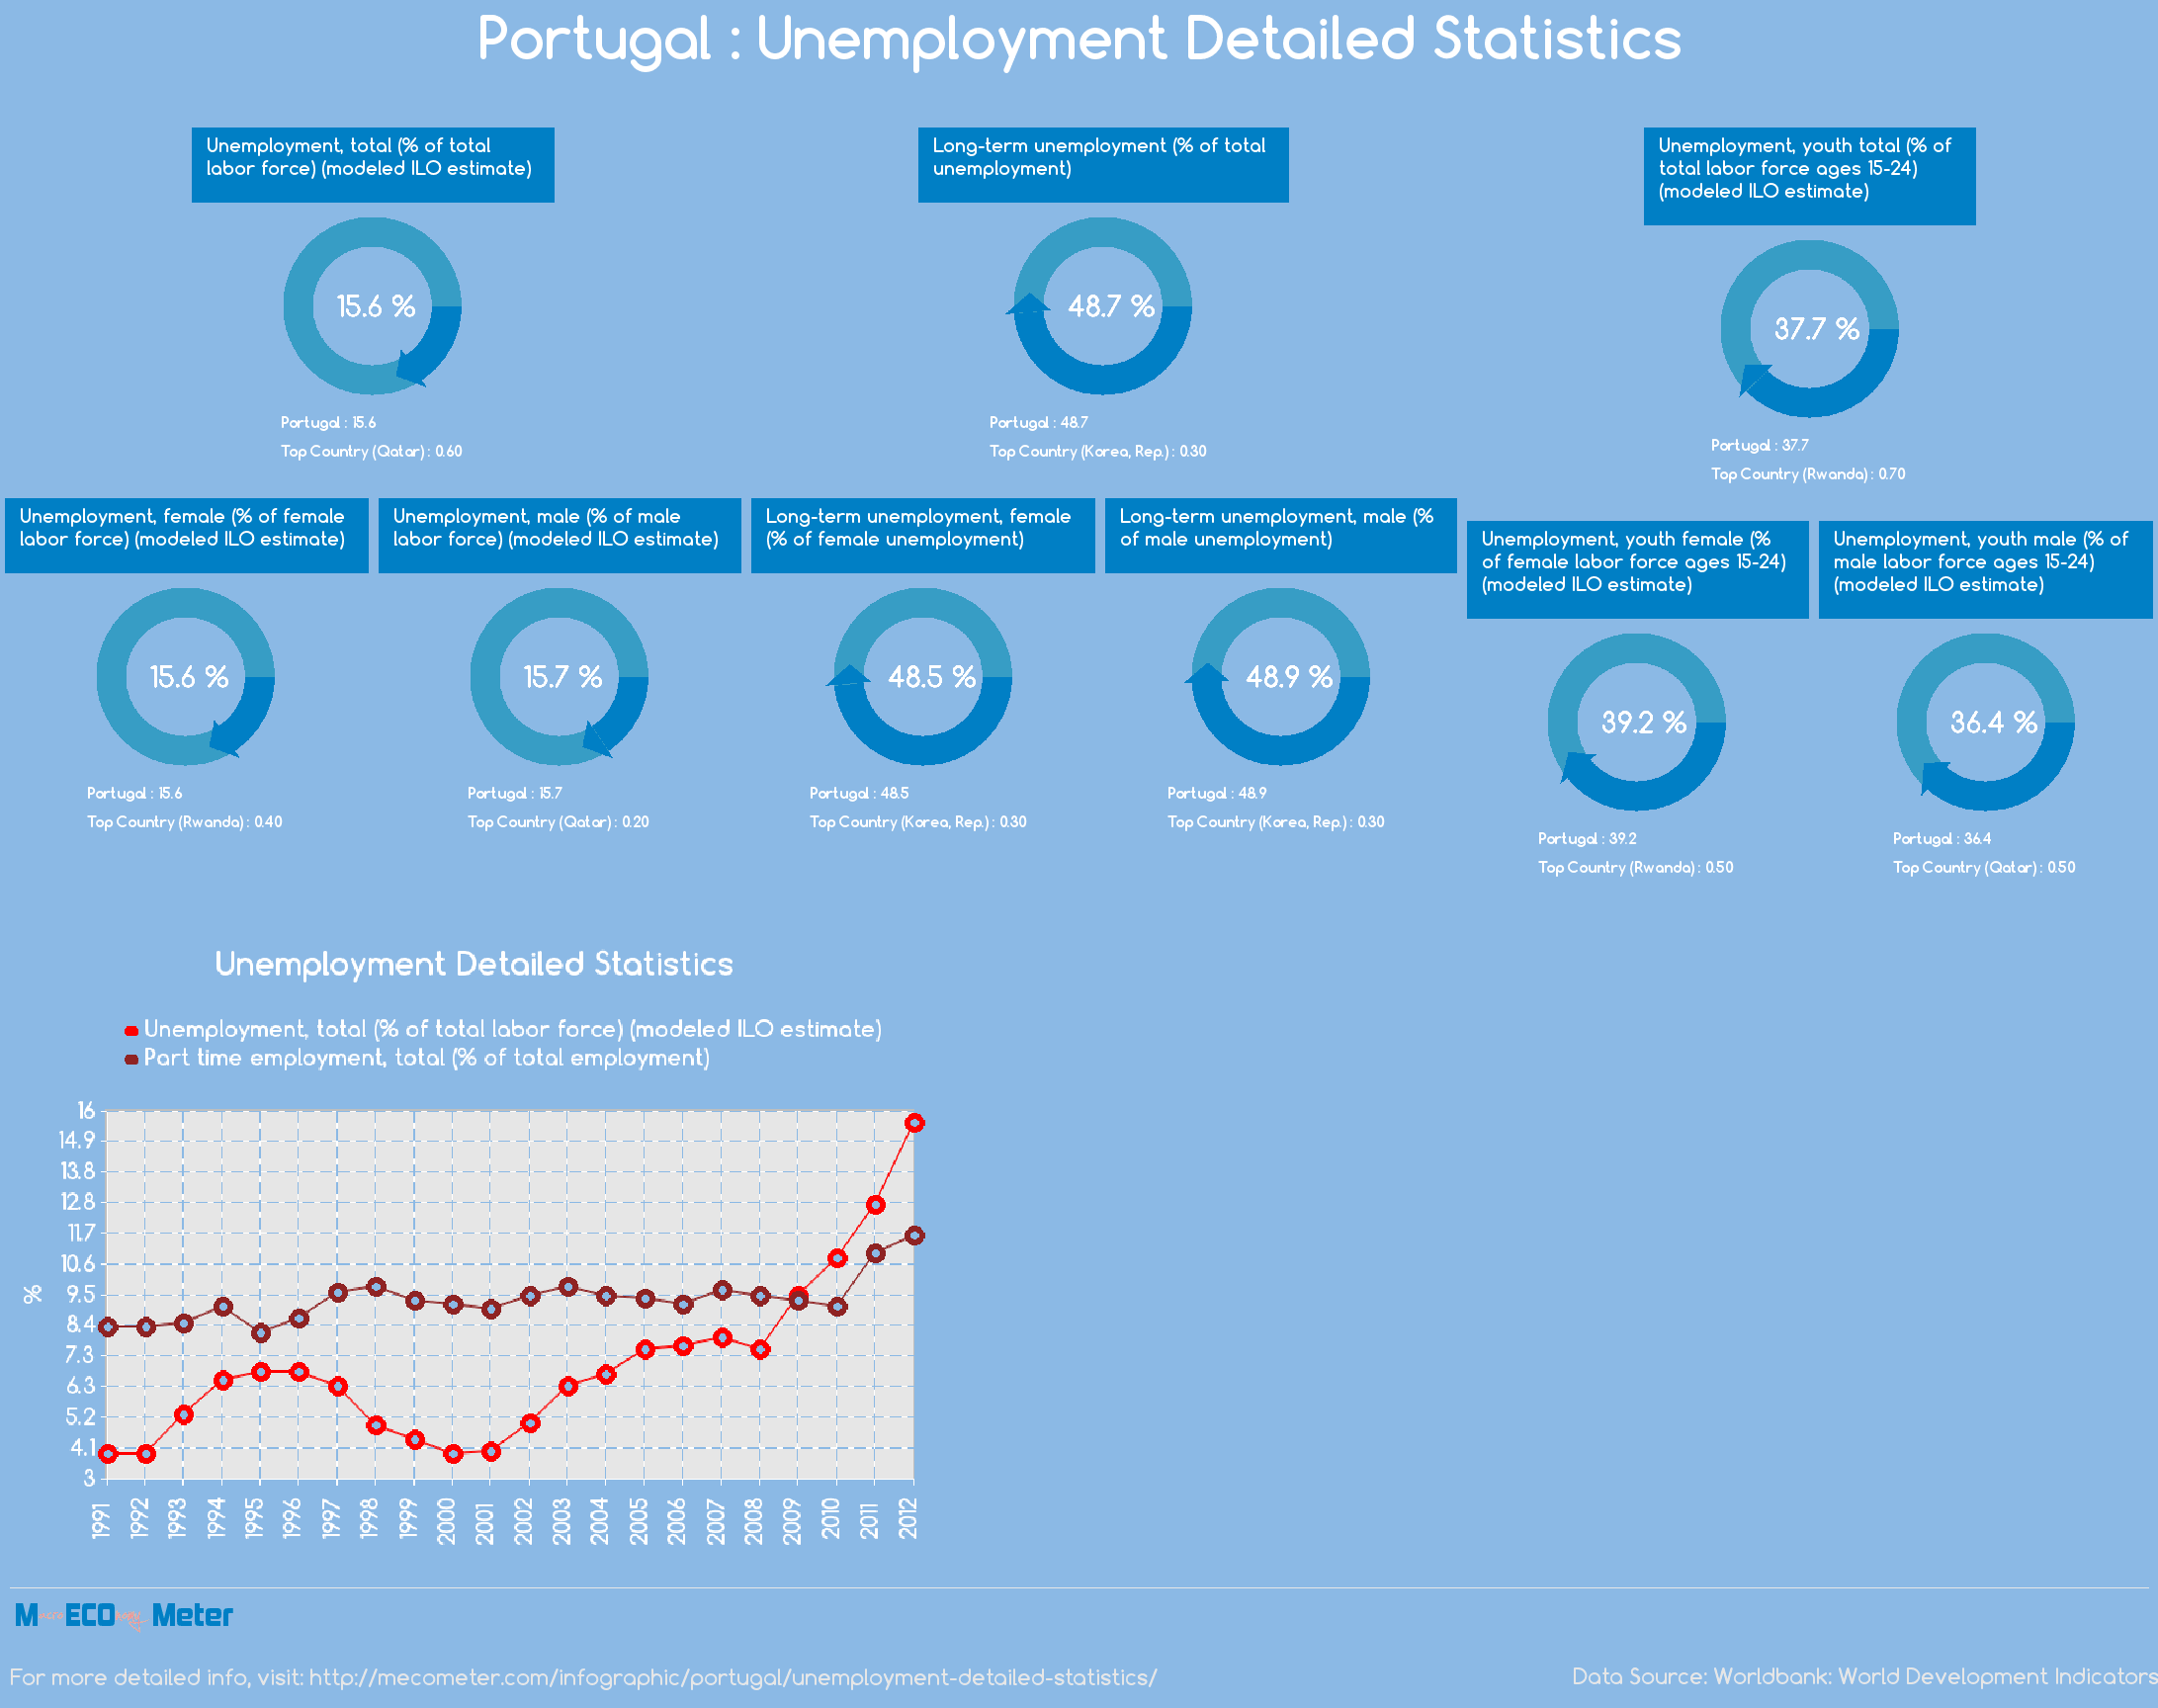 Portugal : Unemployment Detailed Statistics